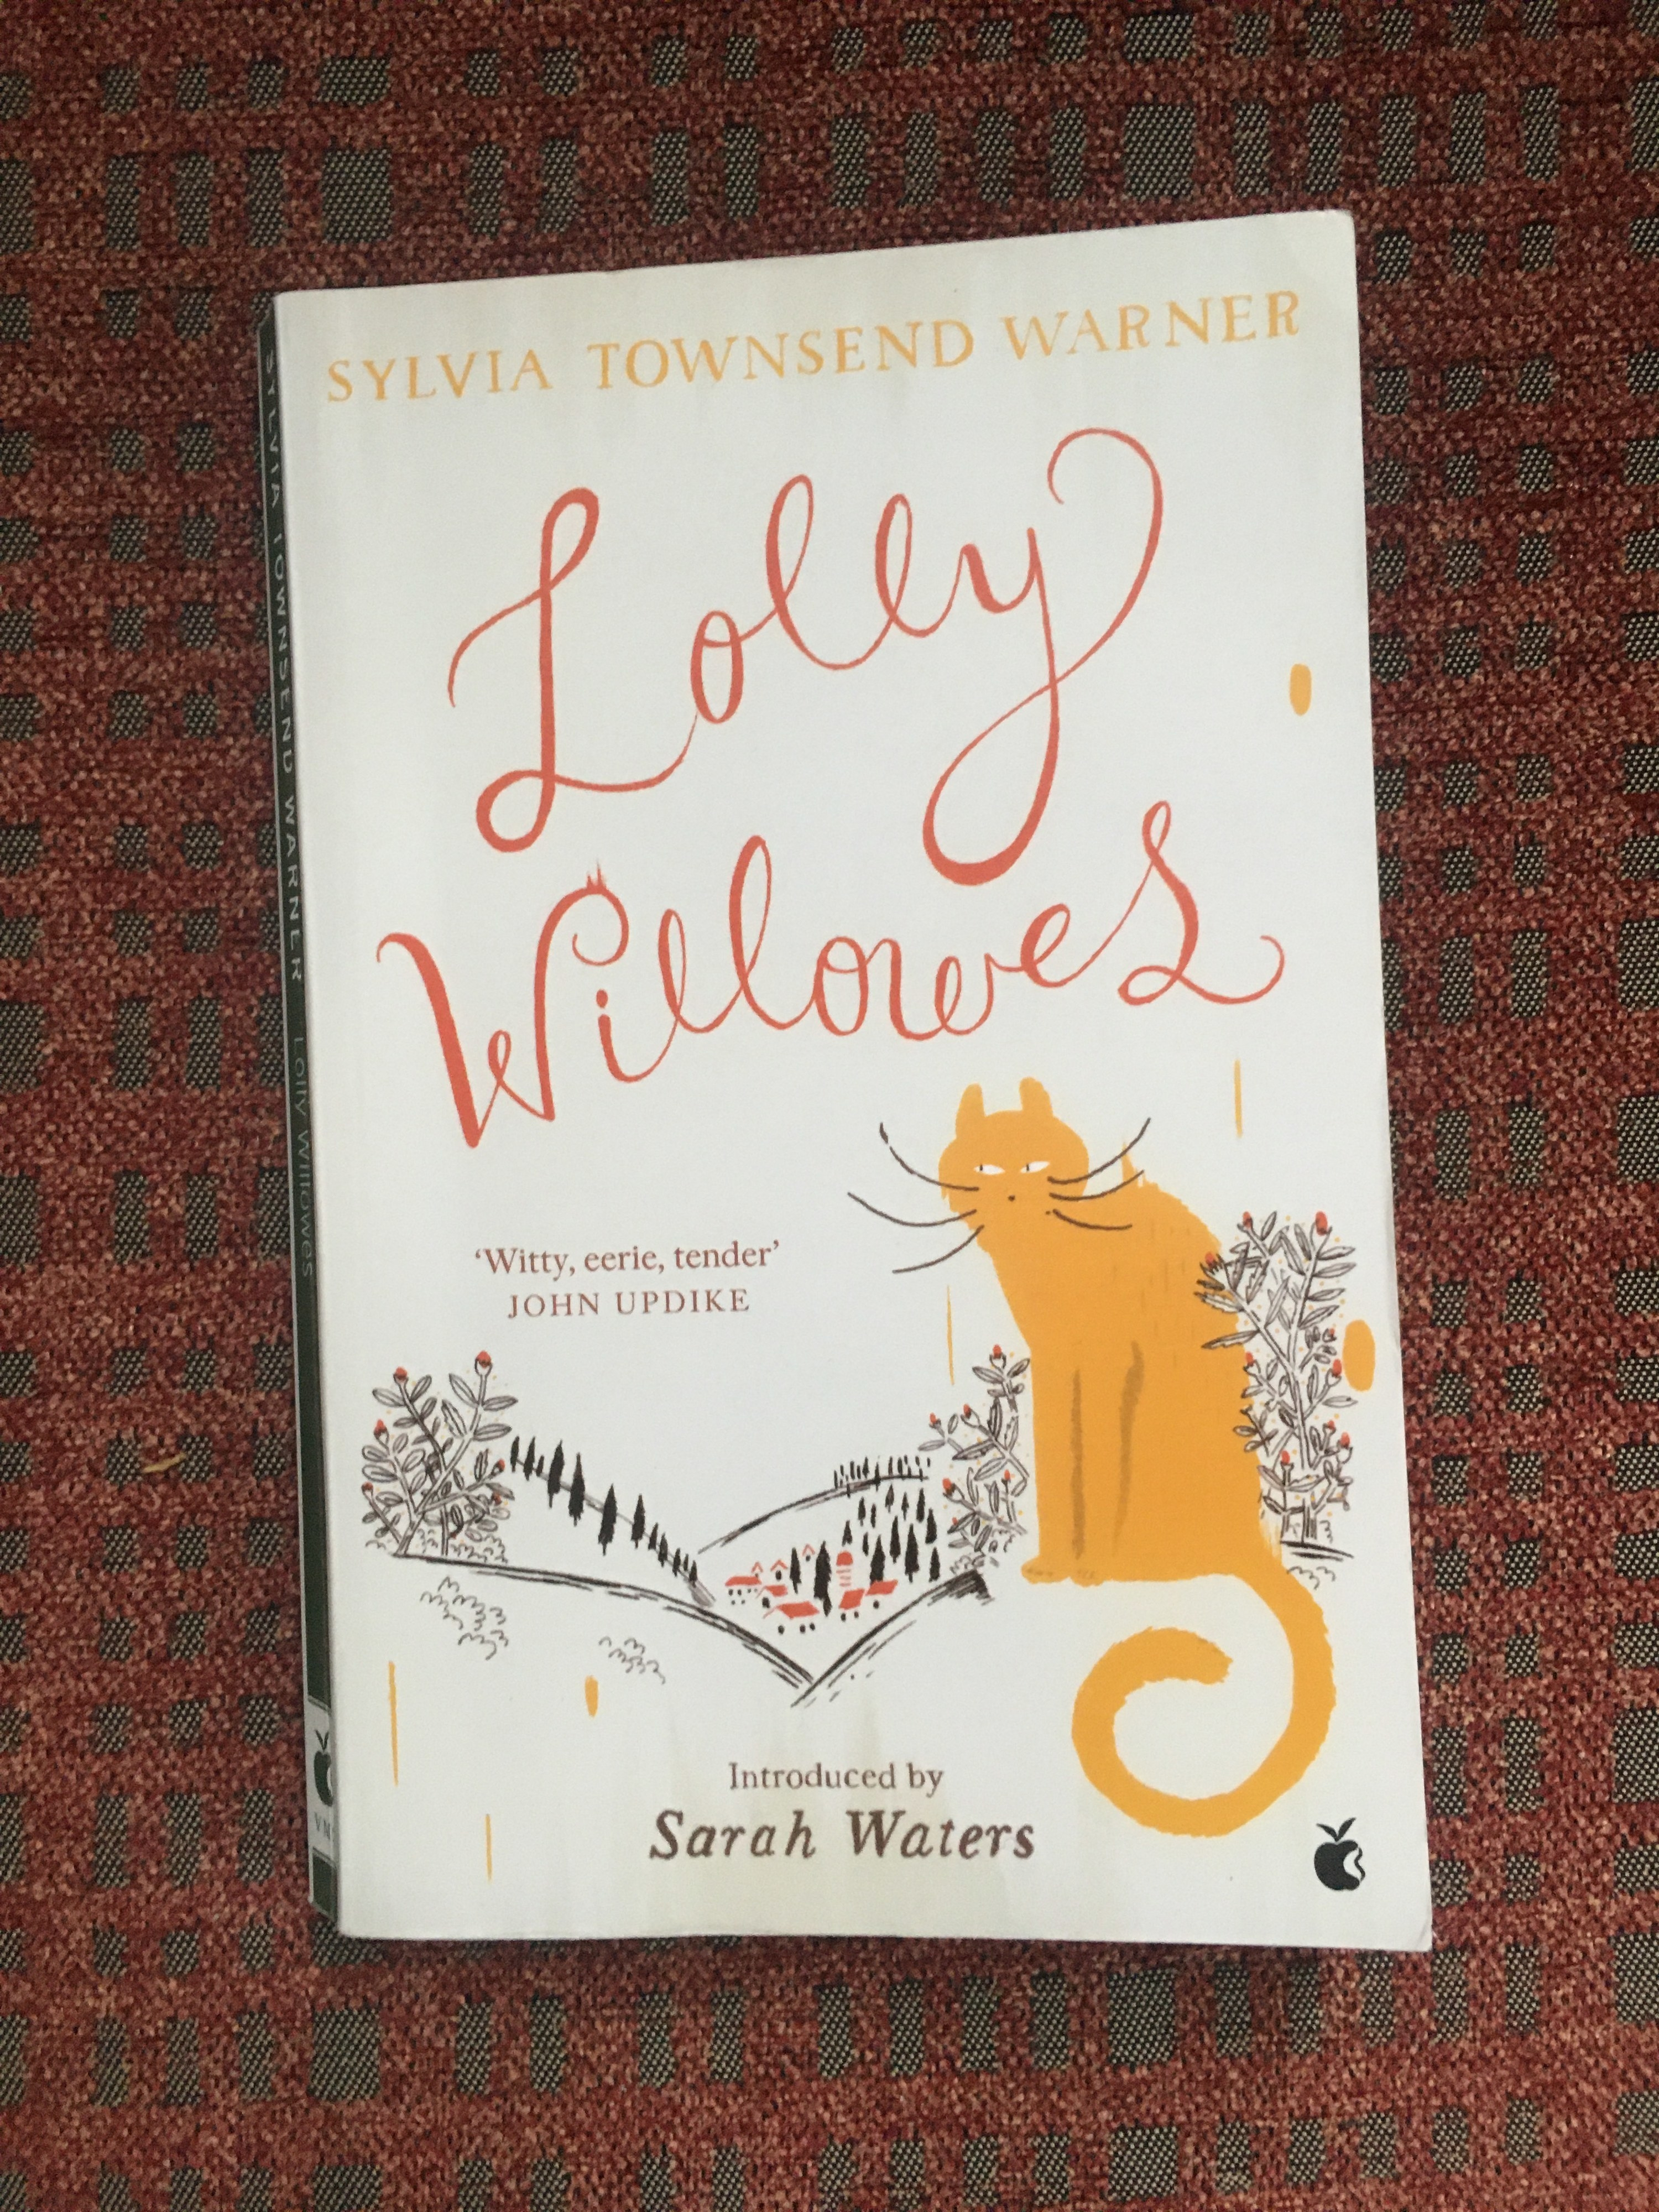 Book cover showing title written in cursive, a cat and a pen drawing of a village nestled in the hills